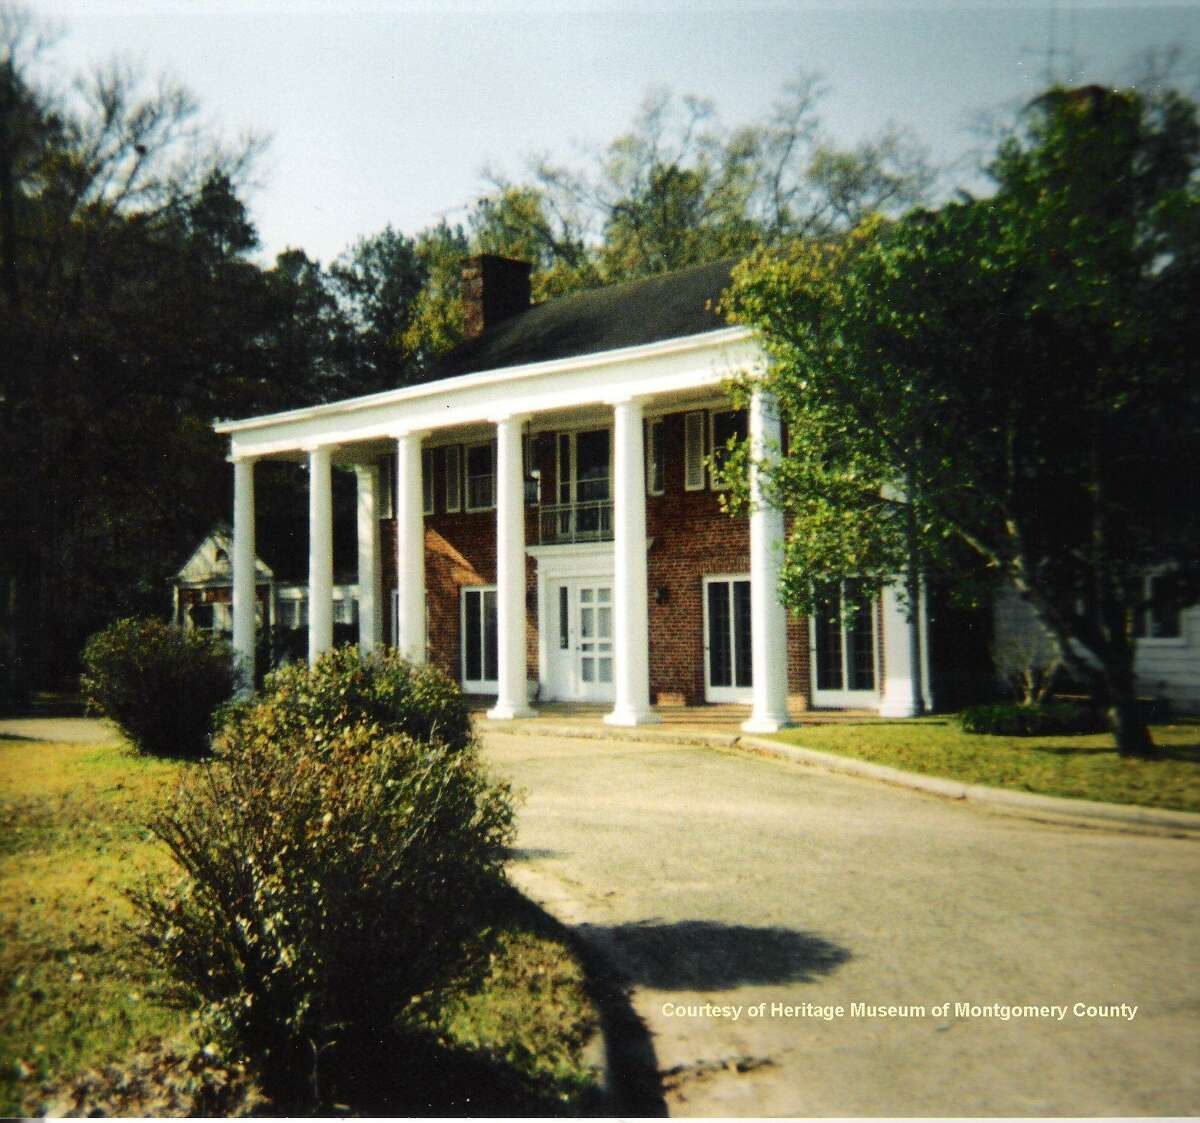 The Hooper house on Frazier Street in Conroe. The residence was built in 1939 on 25 acres and was lived in by family members through 1976. It became weathered by time and was torn down in the early 2000s.